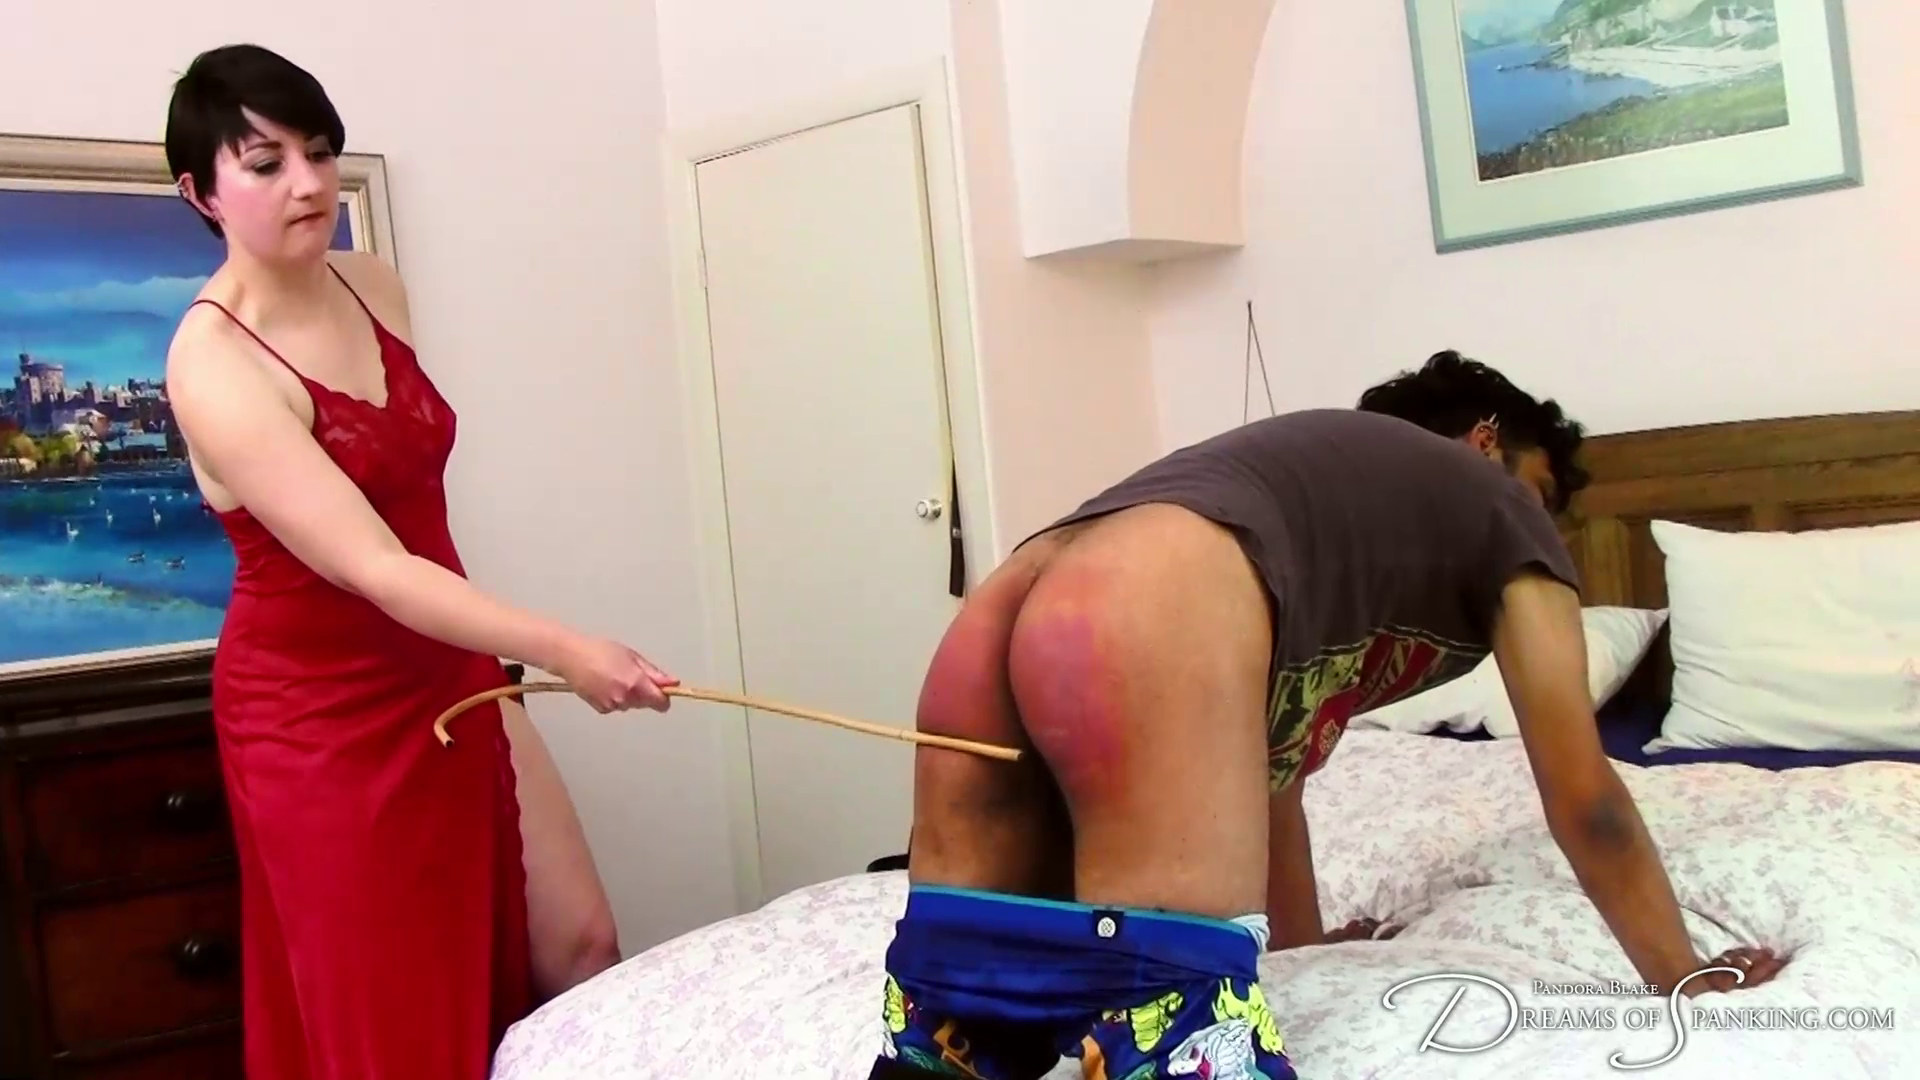 Carlos Green gets the cane on his red bottom from Pandora Blake at Dreams of Spanking